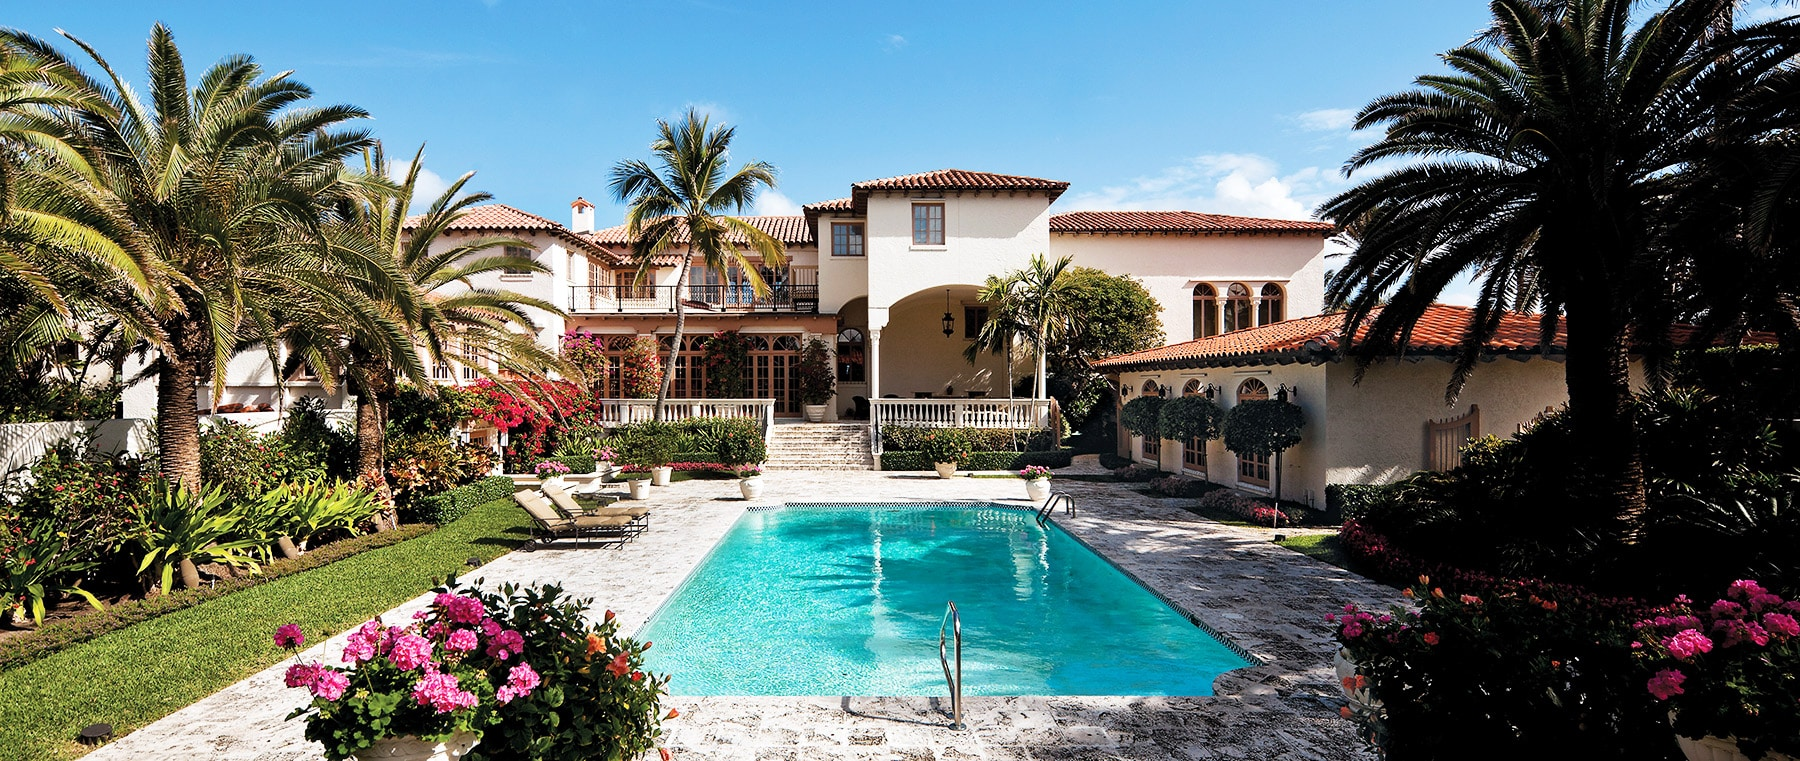 Pool and Garden of El Solano, Designed by Mizner